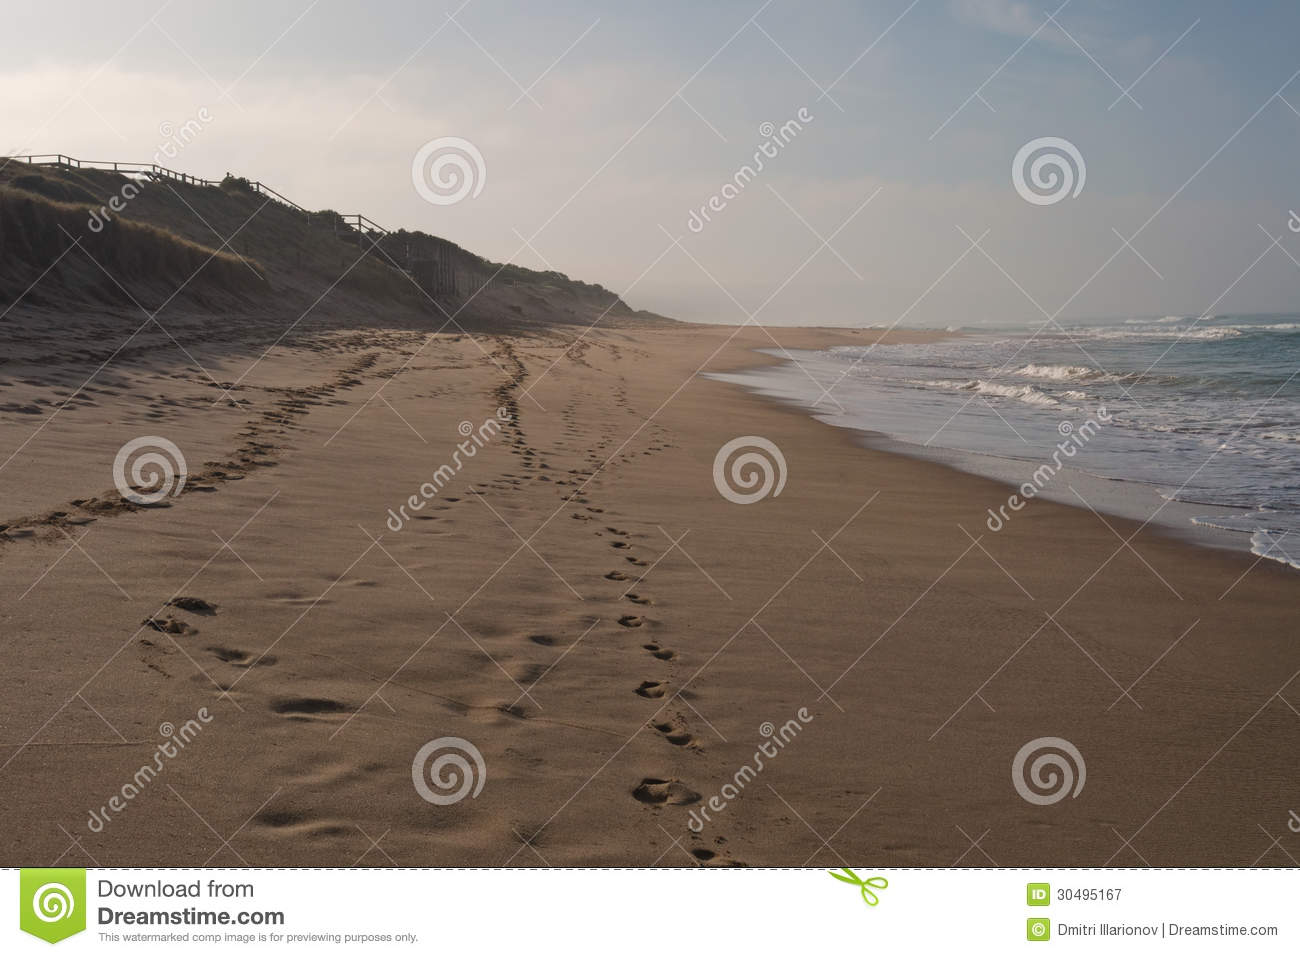 Surfing beach in morning dusk with breaking waves footprints on sand